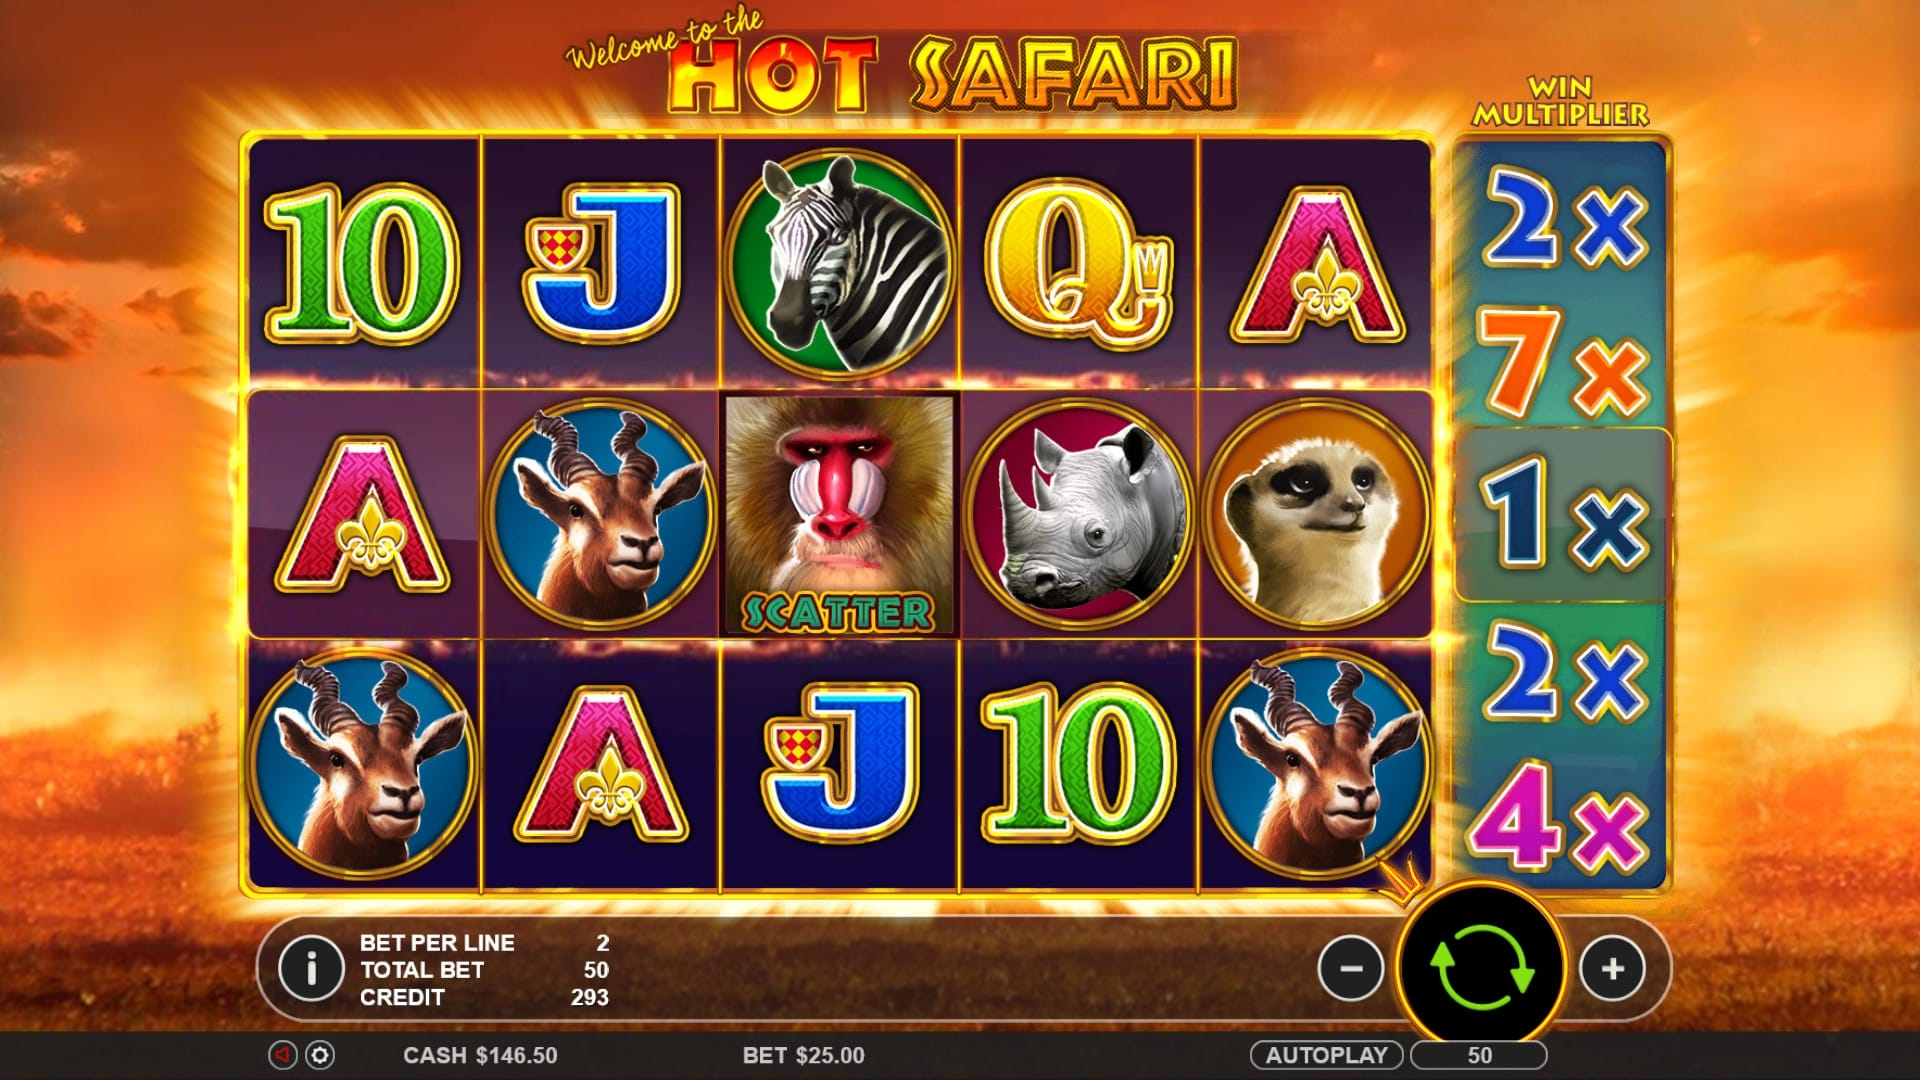 hot safari gameplay